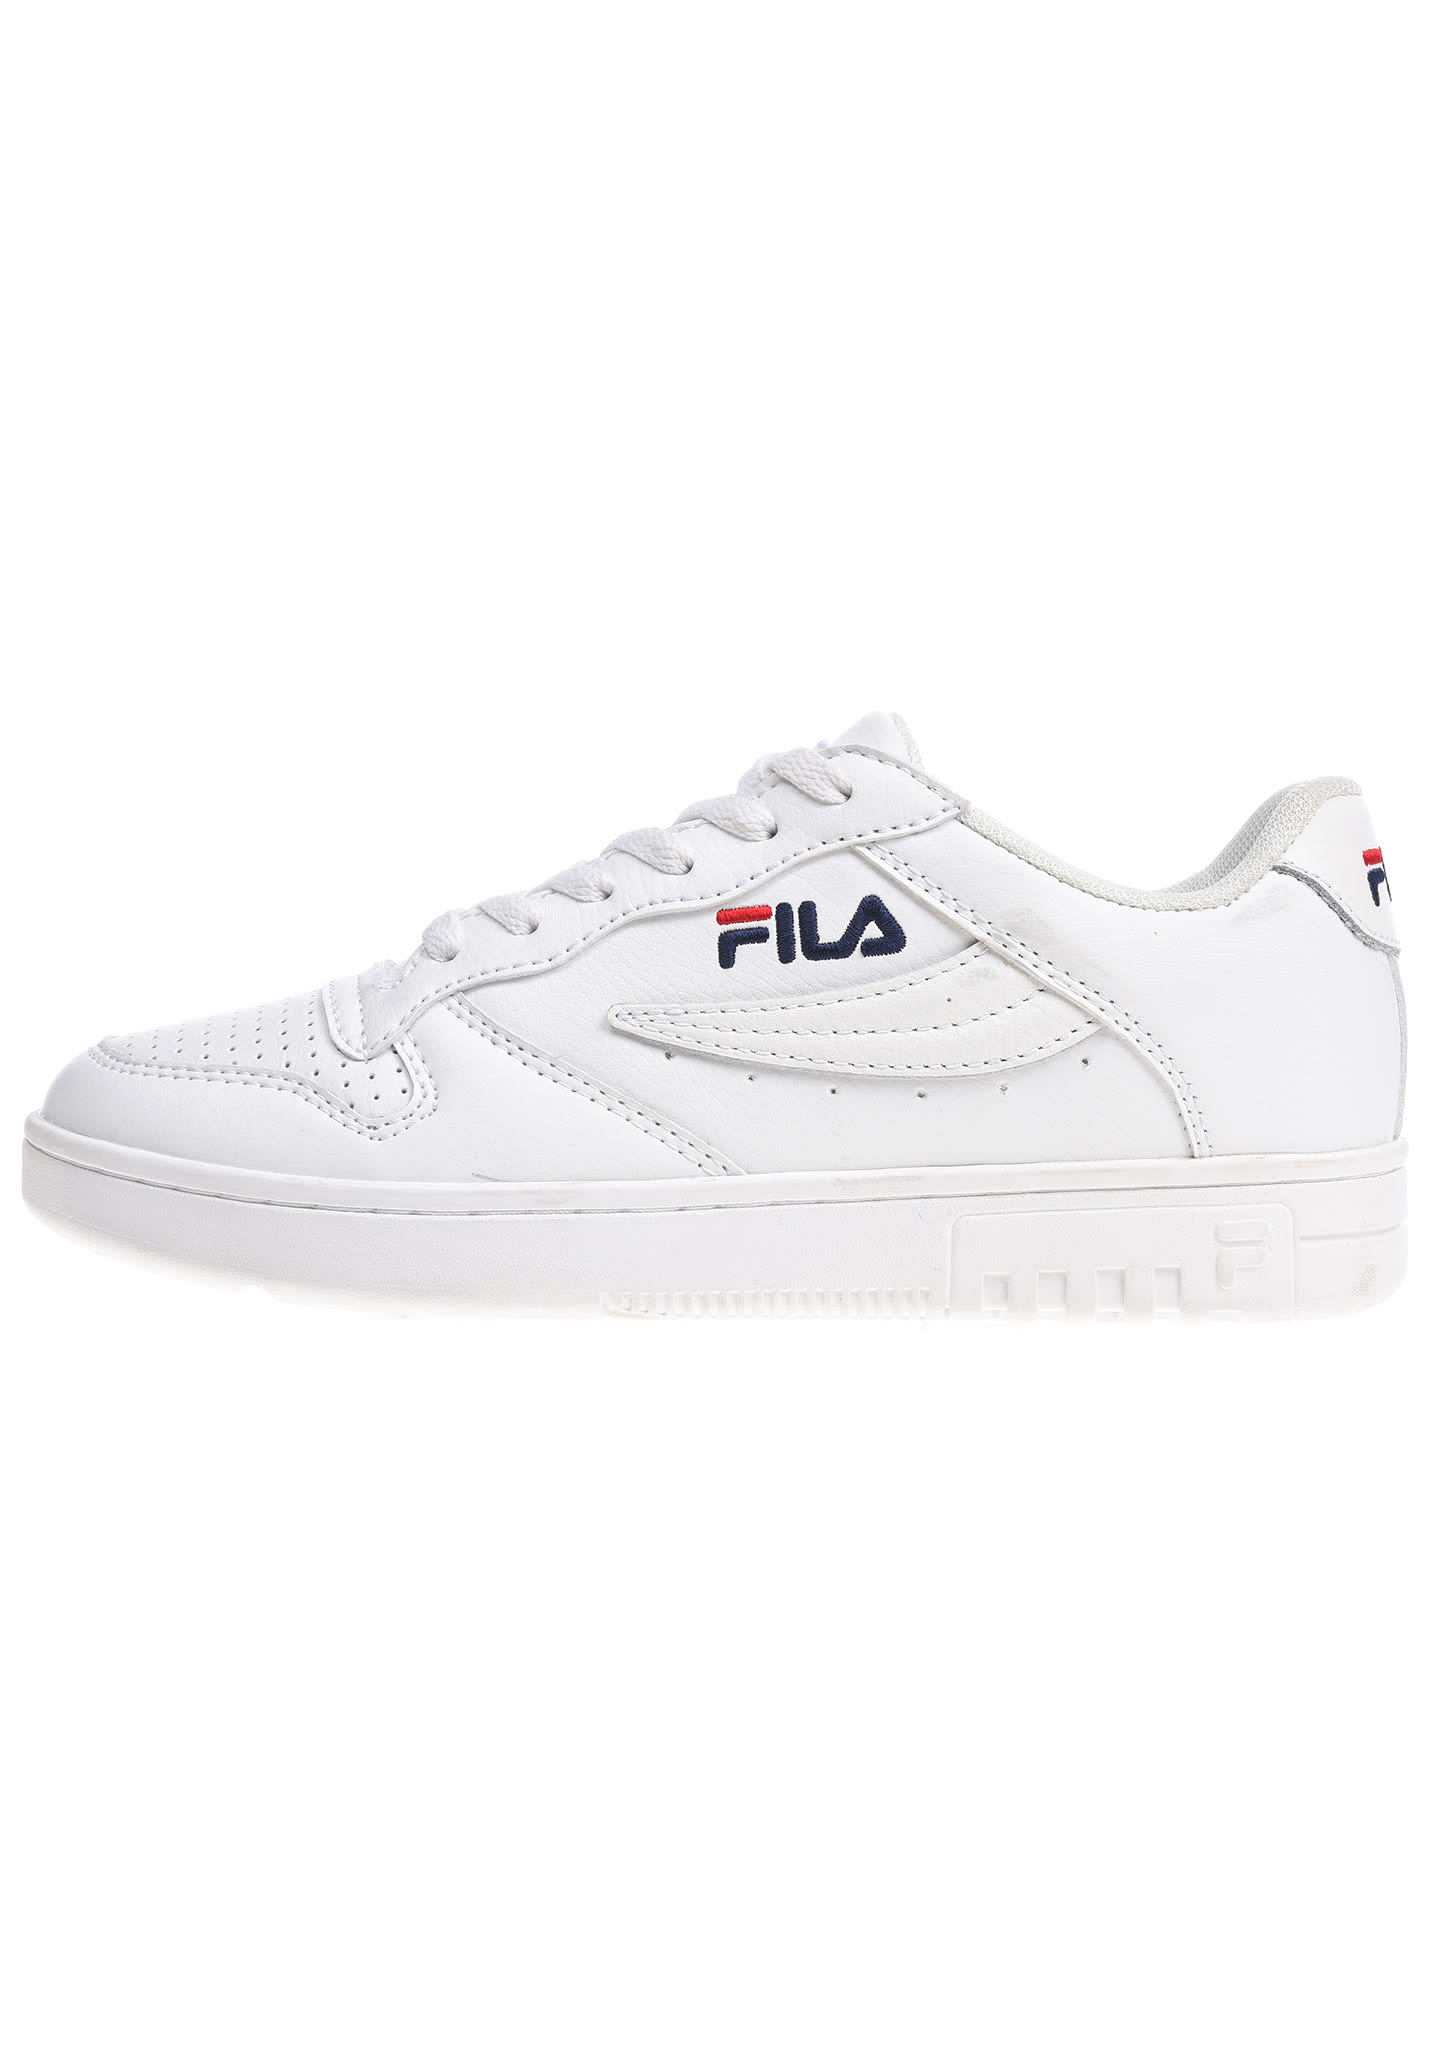 Fila Heritage FX100 Low - Sneakers for Men - White